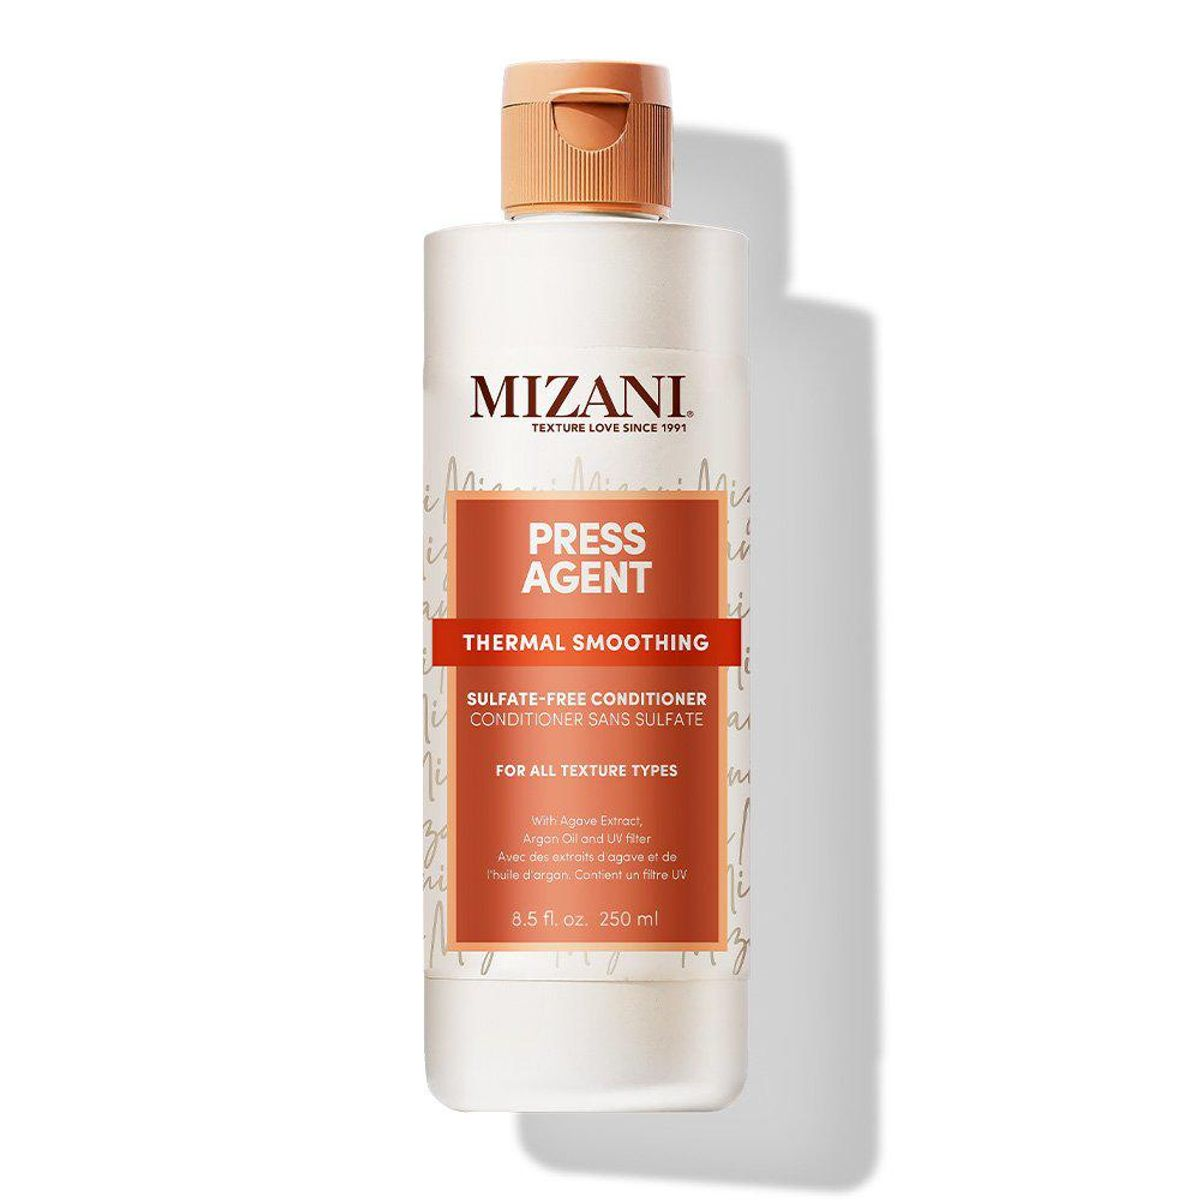 Press Agent Thermal Smoothing Sulfate Free Conditioner